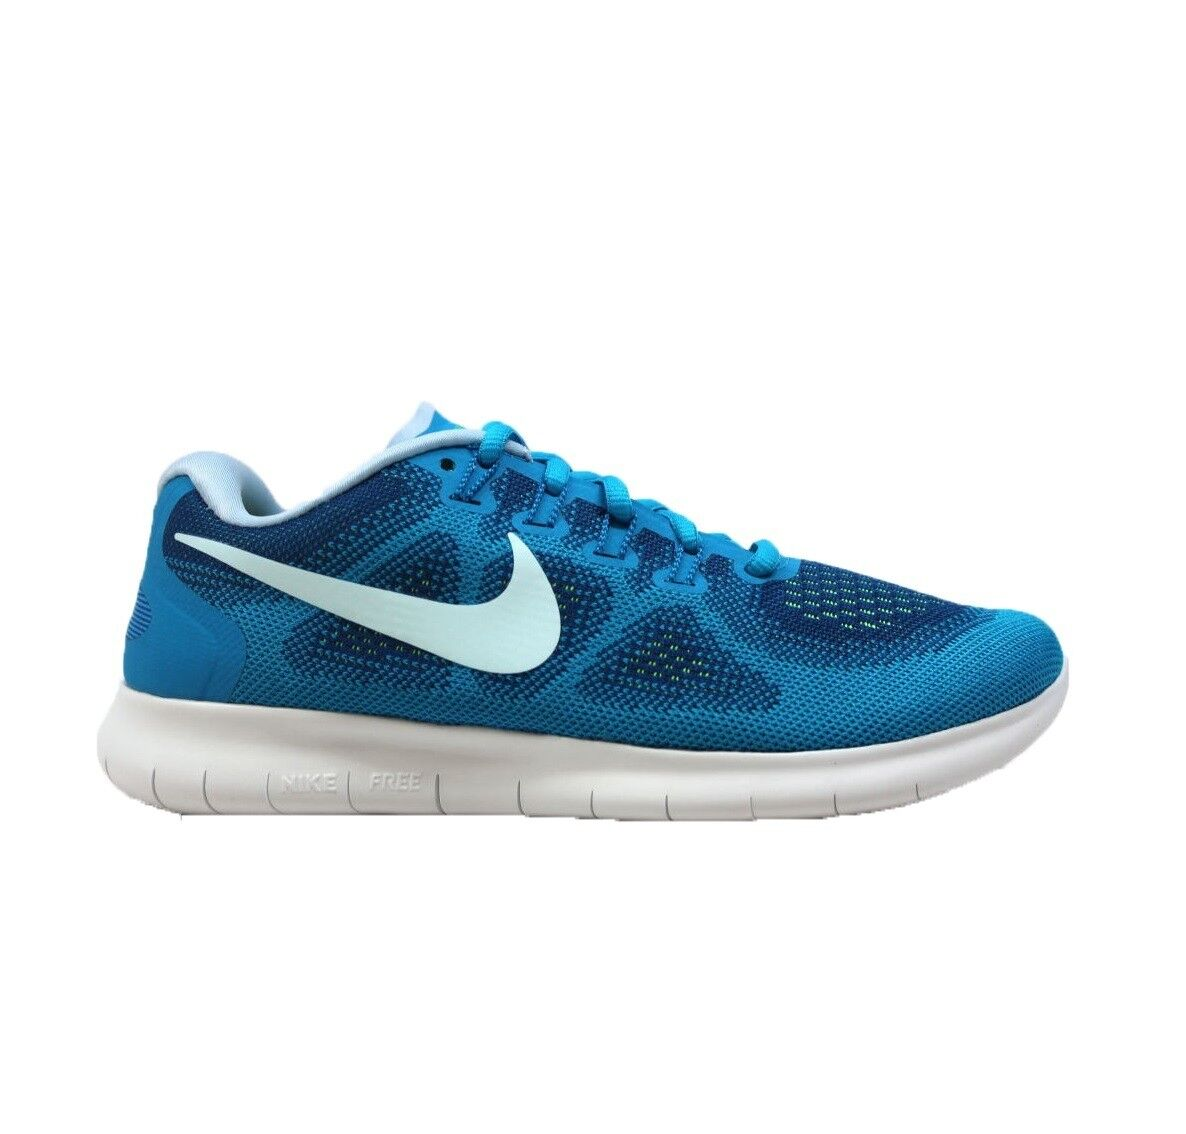 Nike Nike Free Run 2017 Femme Gym Bleu Running Trainer chaussures Taille 5 5.5 6 7 NEUF